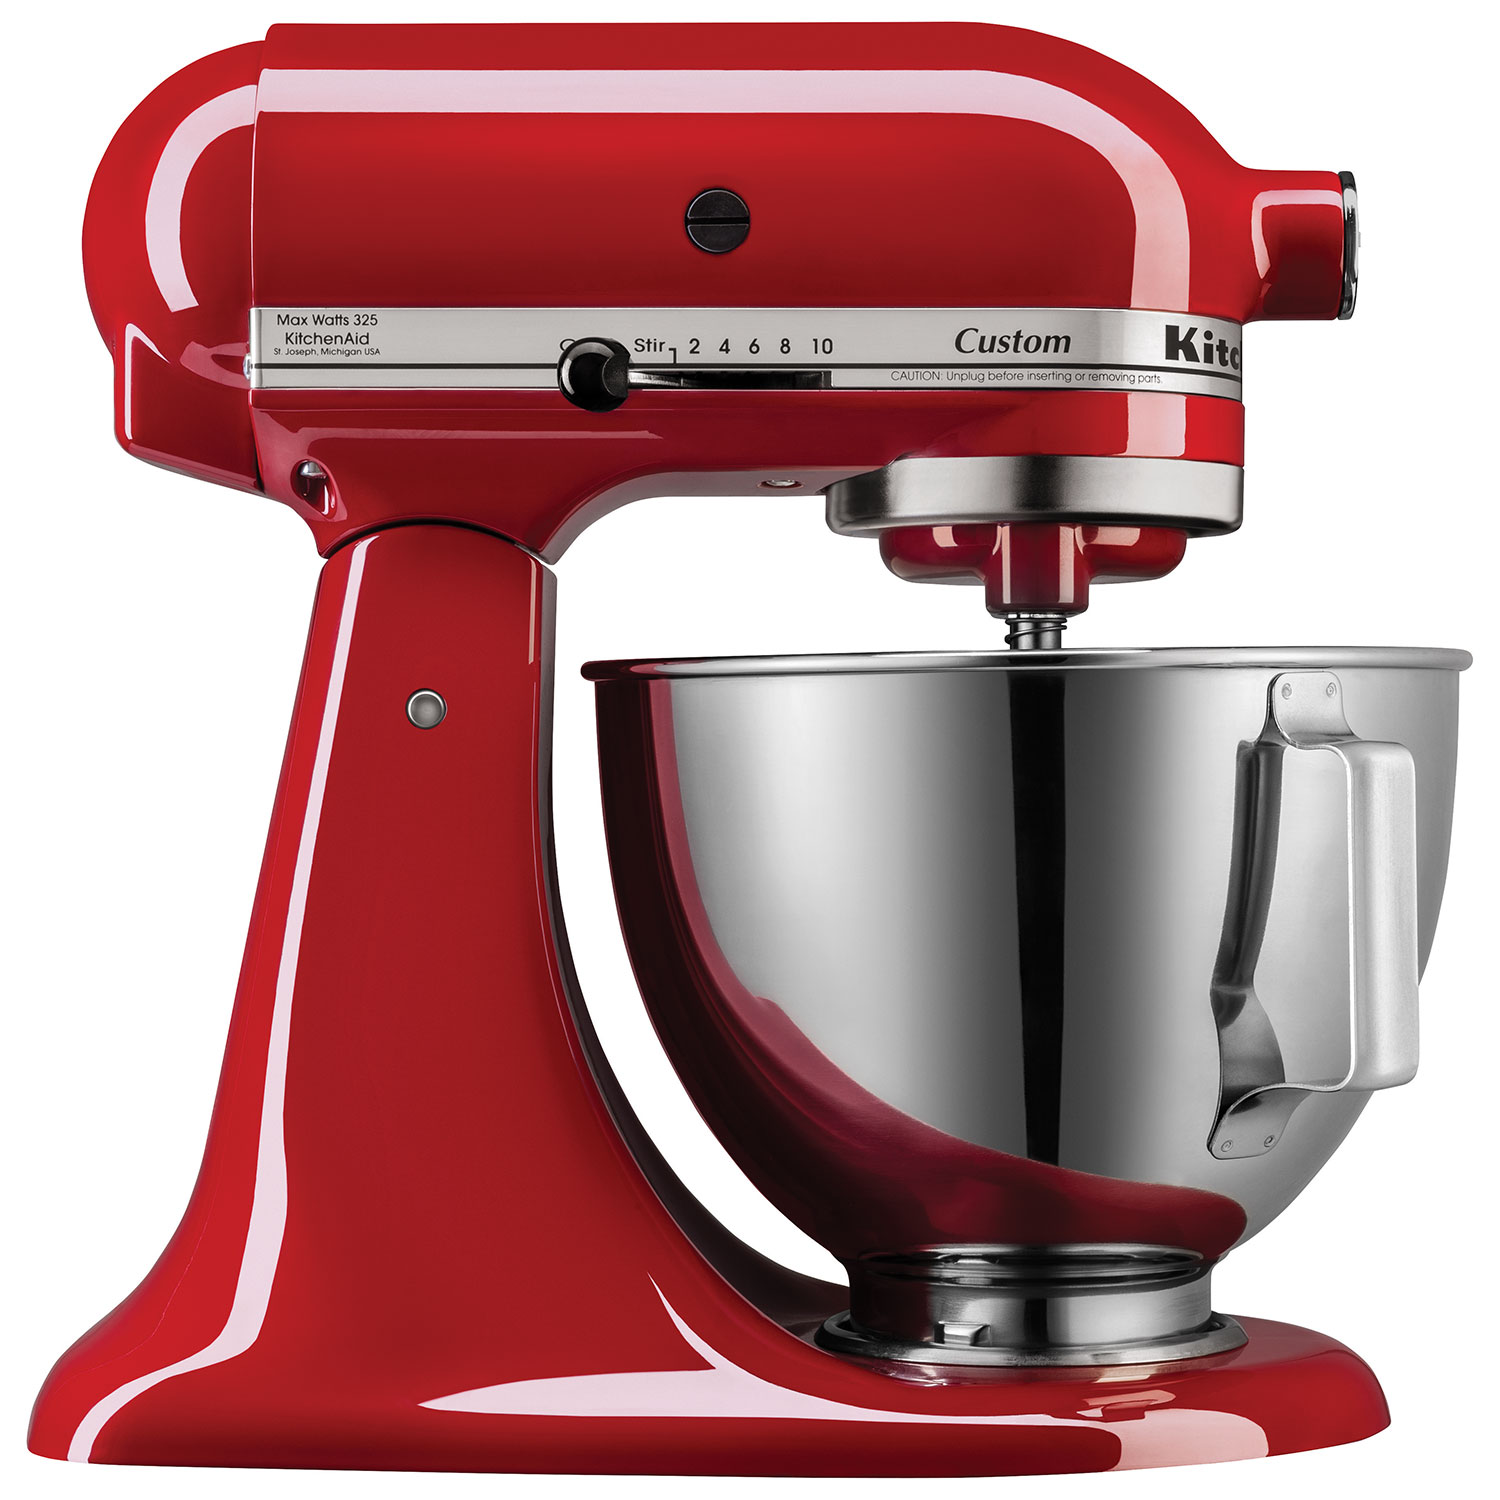 Kitchen small appliances edmonton - Kitchenaid Custom Stand Mixer 4 26l 325 Watt Empire Red Stand Mixers Best Buy Canada